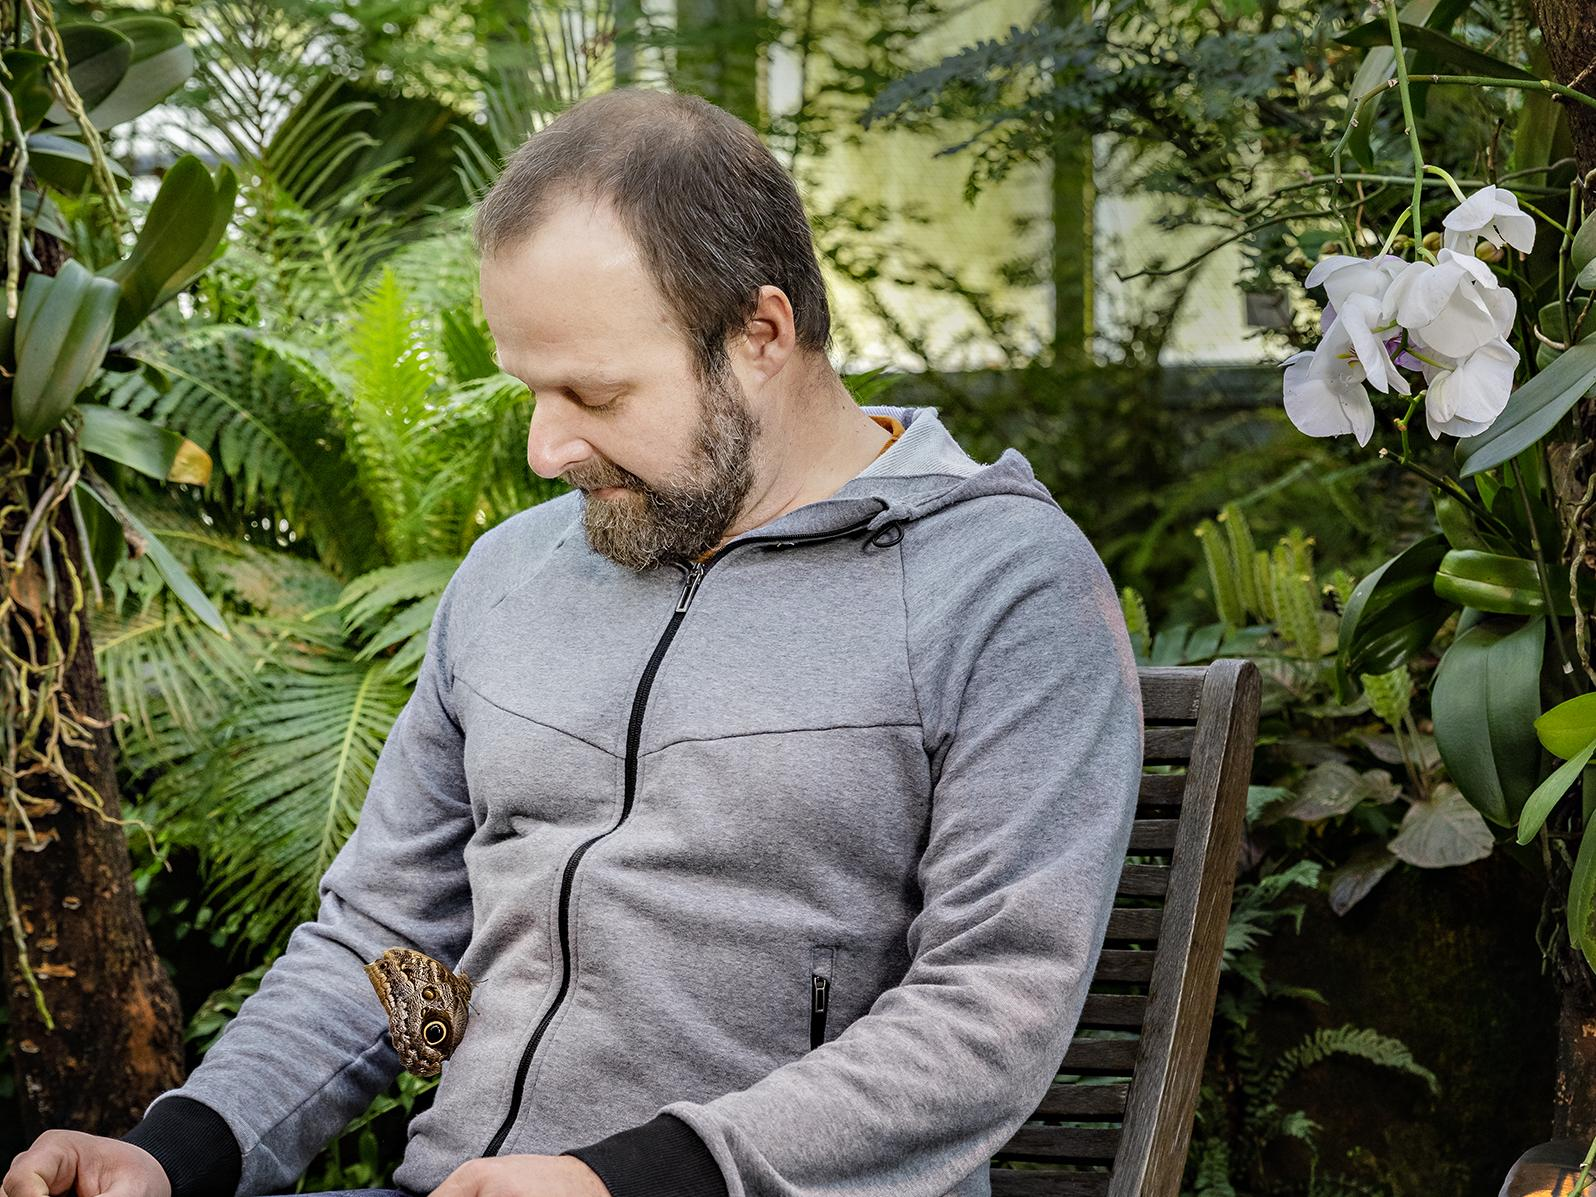 Thorsten Kluß in the Botanic Garden with a Butterflx on his knee.